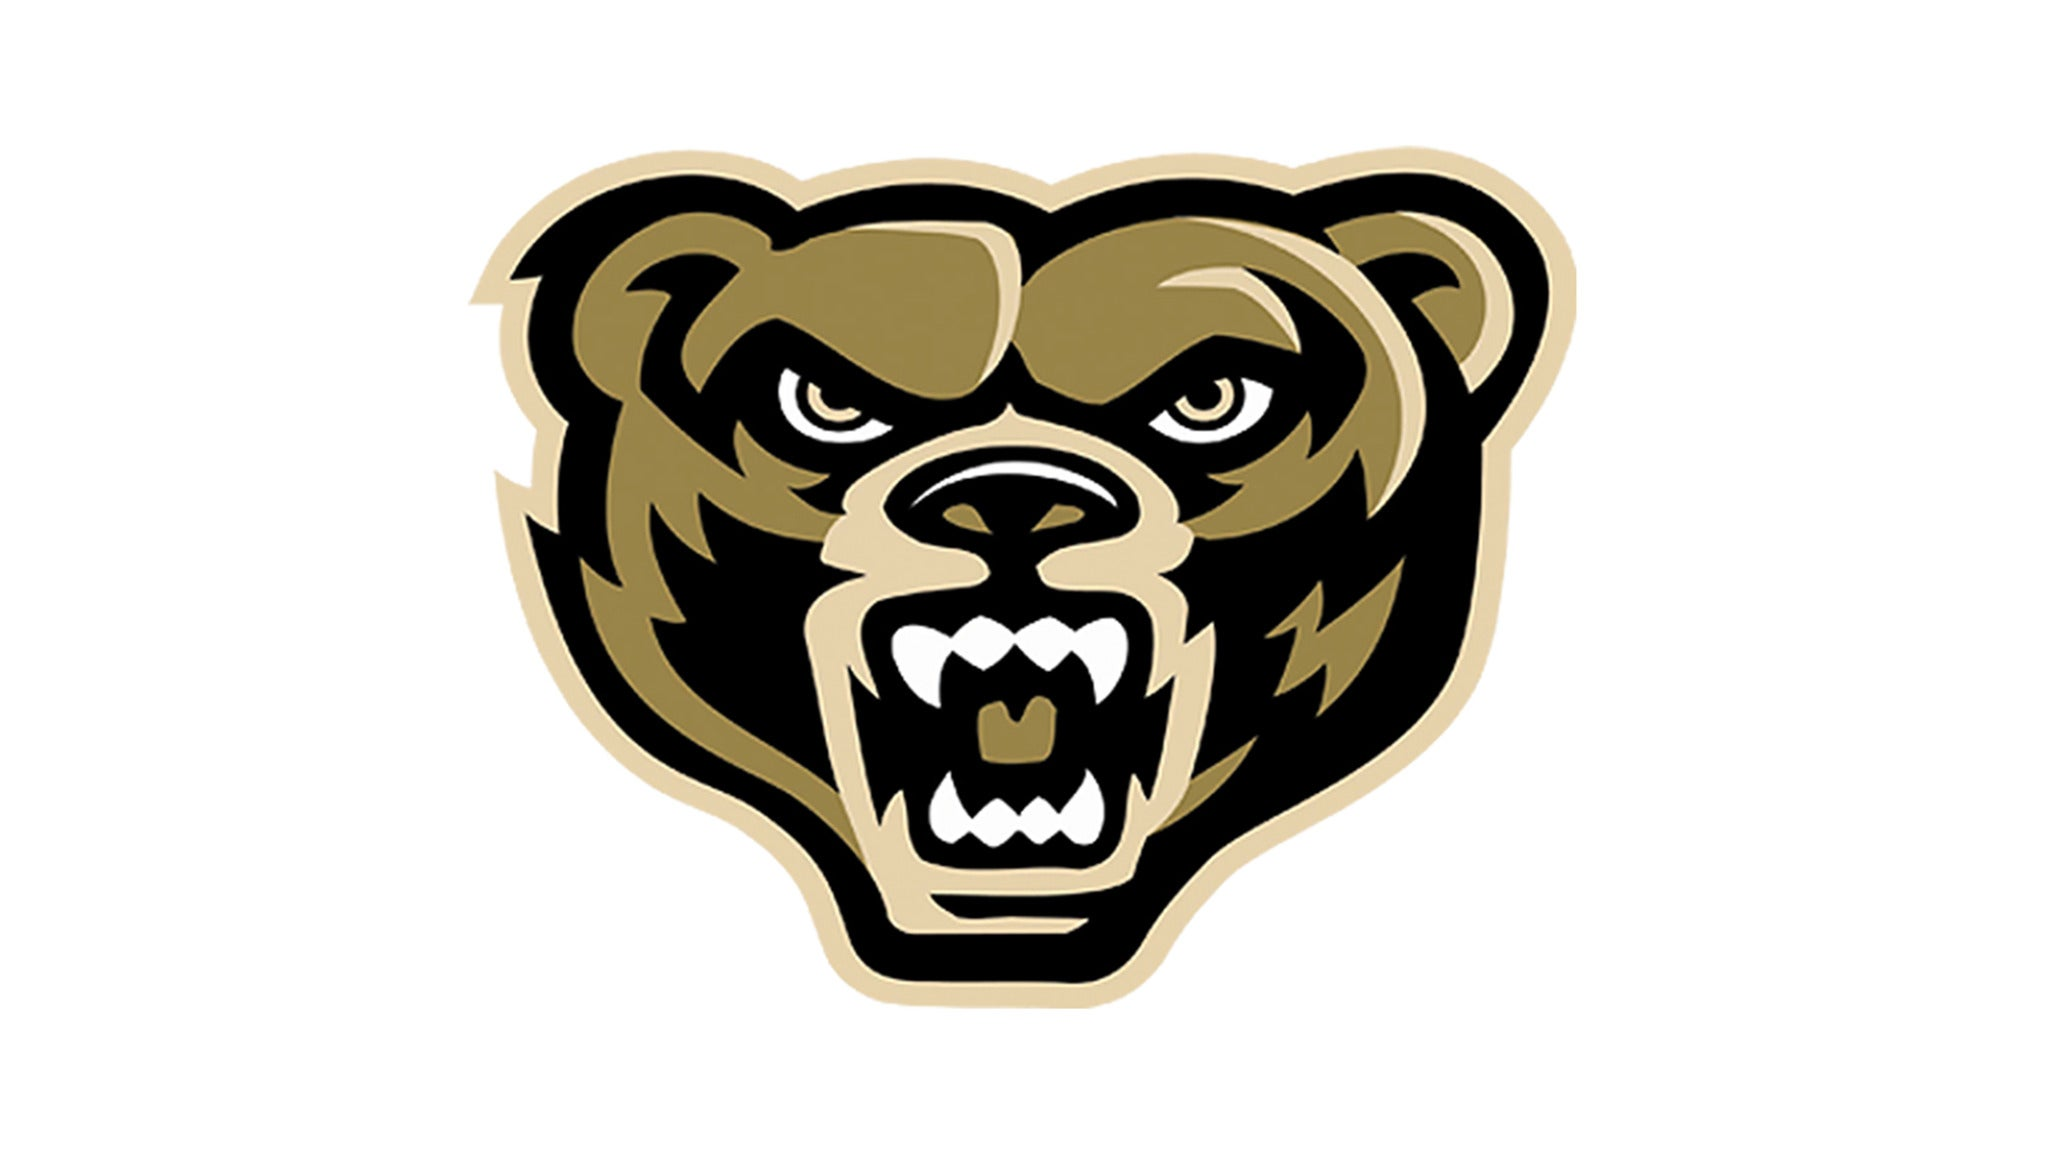 Oakland University Golden Grizzlies Men's Basketball